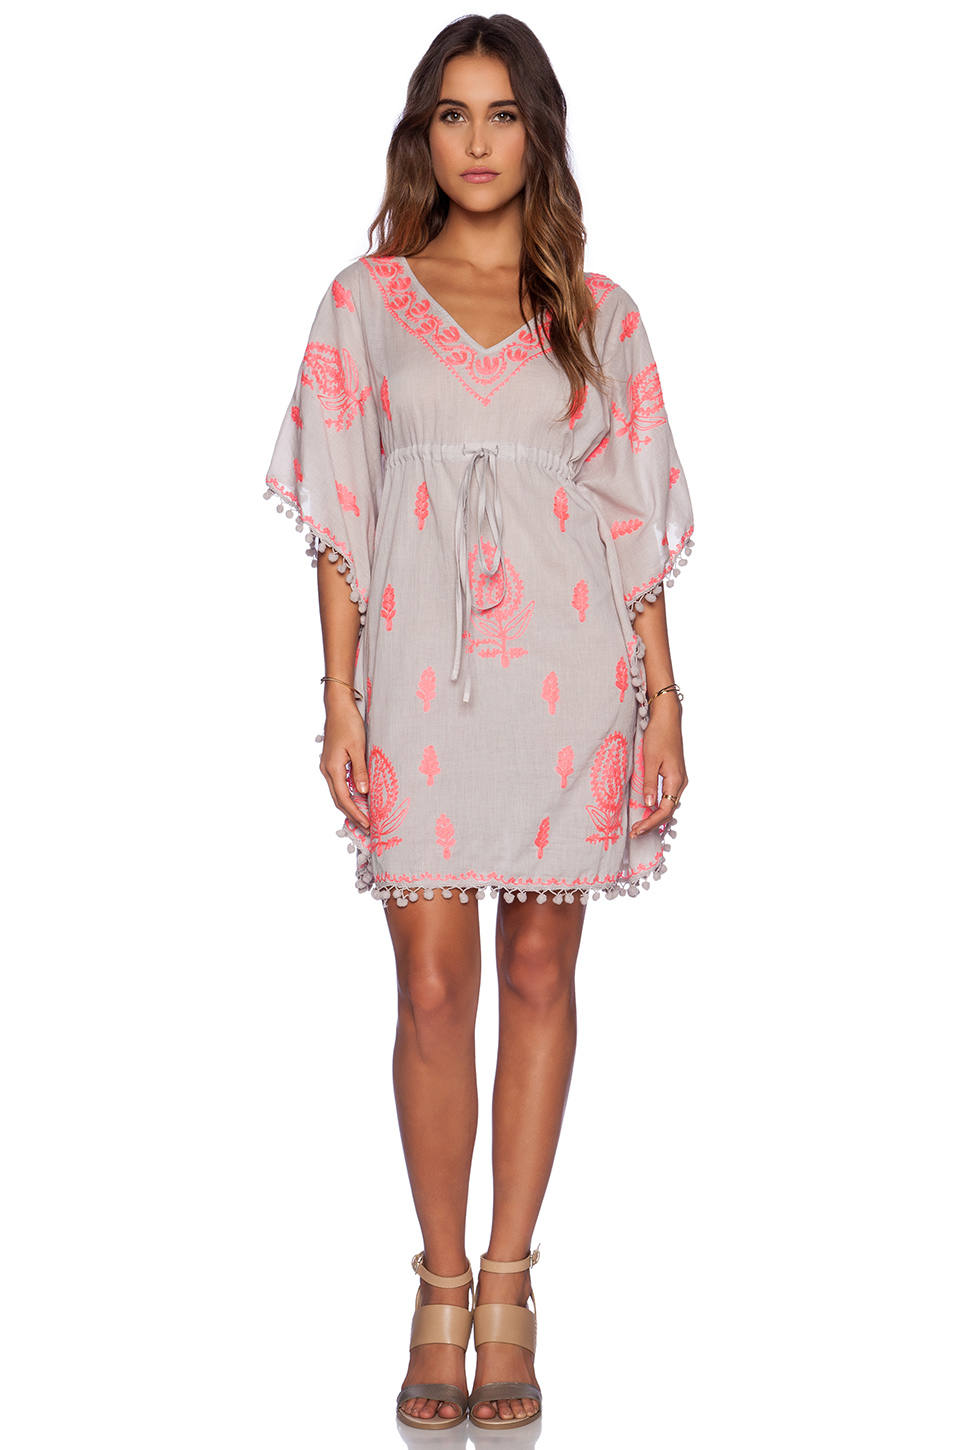 Looking for a Beach Kaftan or Cover-Up to finish off your beach wardrobe? Browse our stunning selection of Seafolly and Coco Bay kaftans and choose a Kaftan or cover-up to throw over your bikini for that sundowner or over a pair of jeans in the evening.